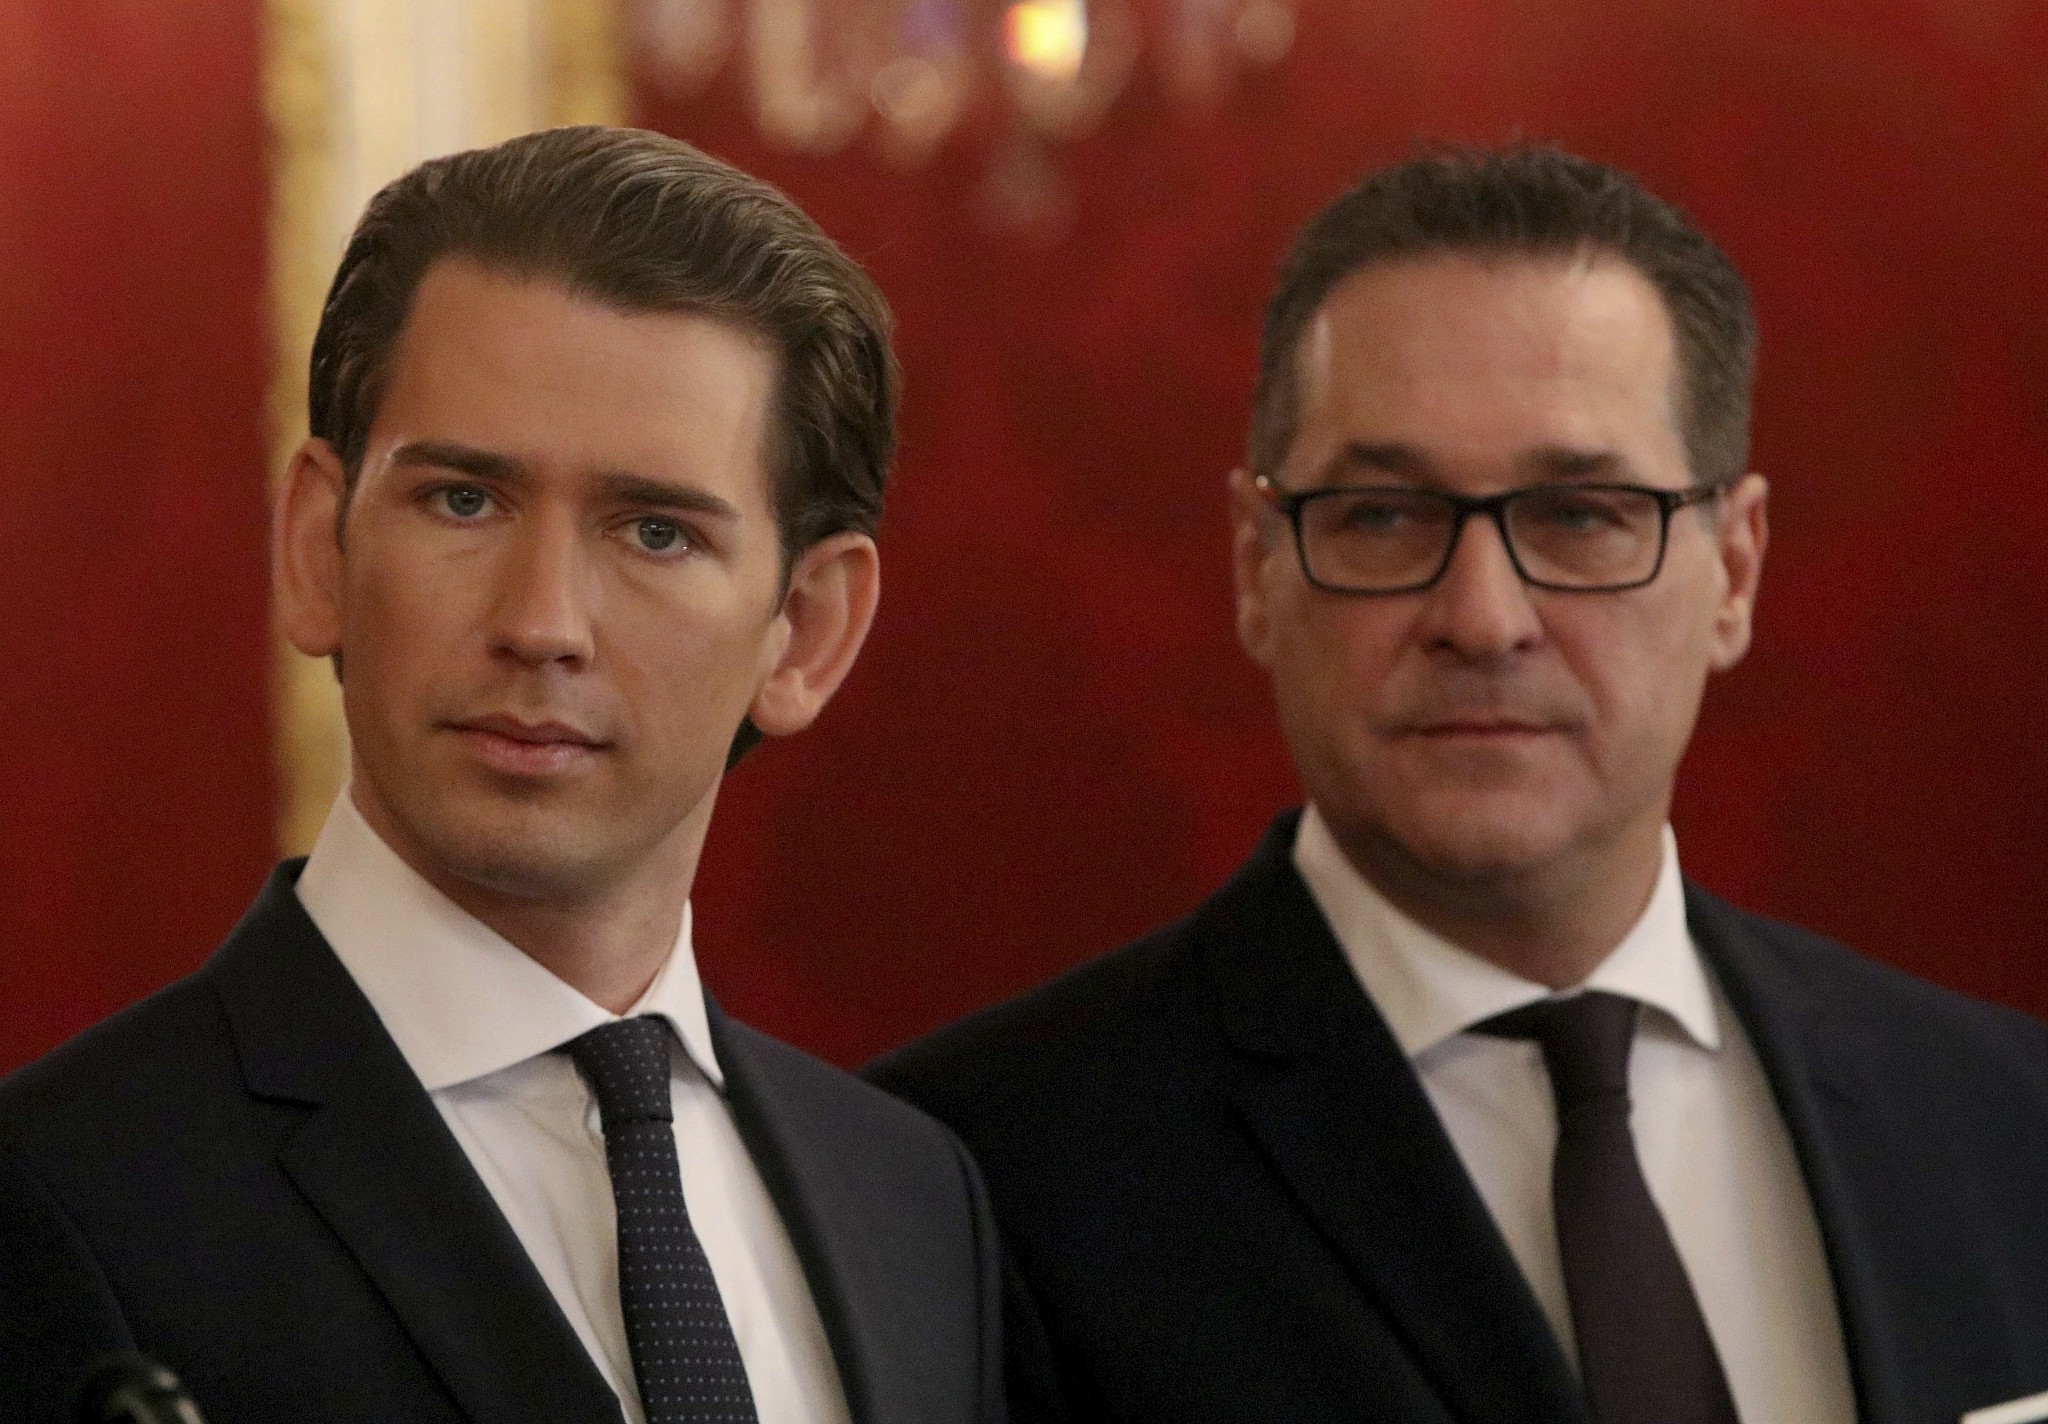 Austrian party founded by ex-Nazis enters coalition government